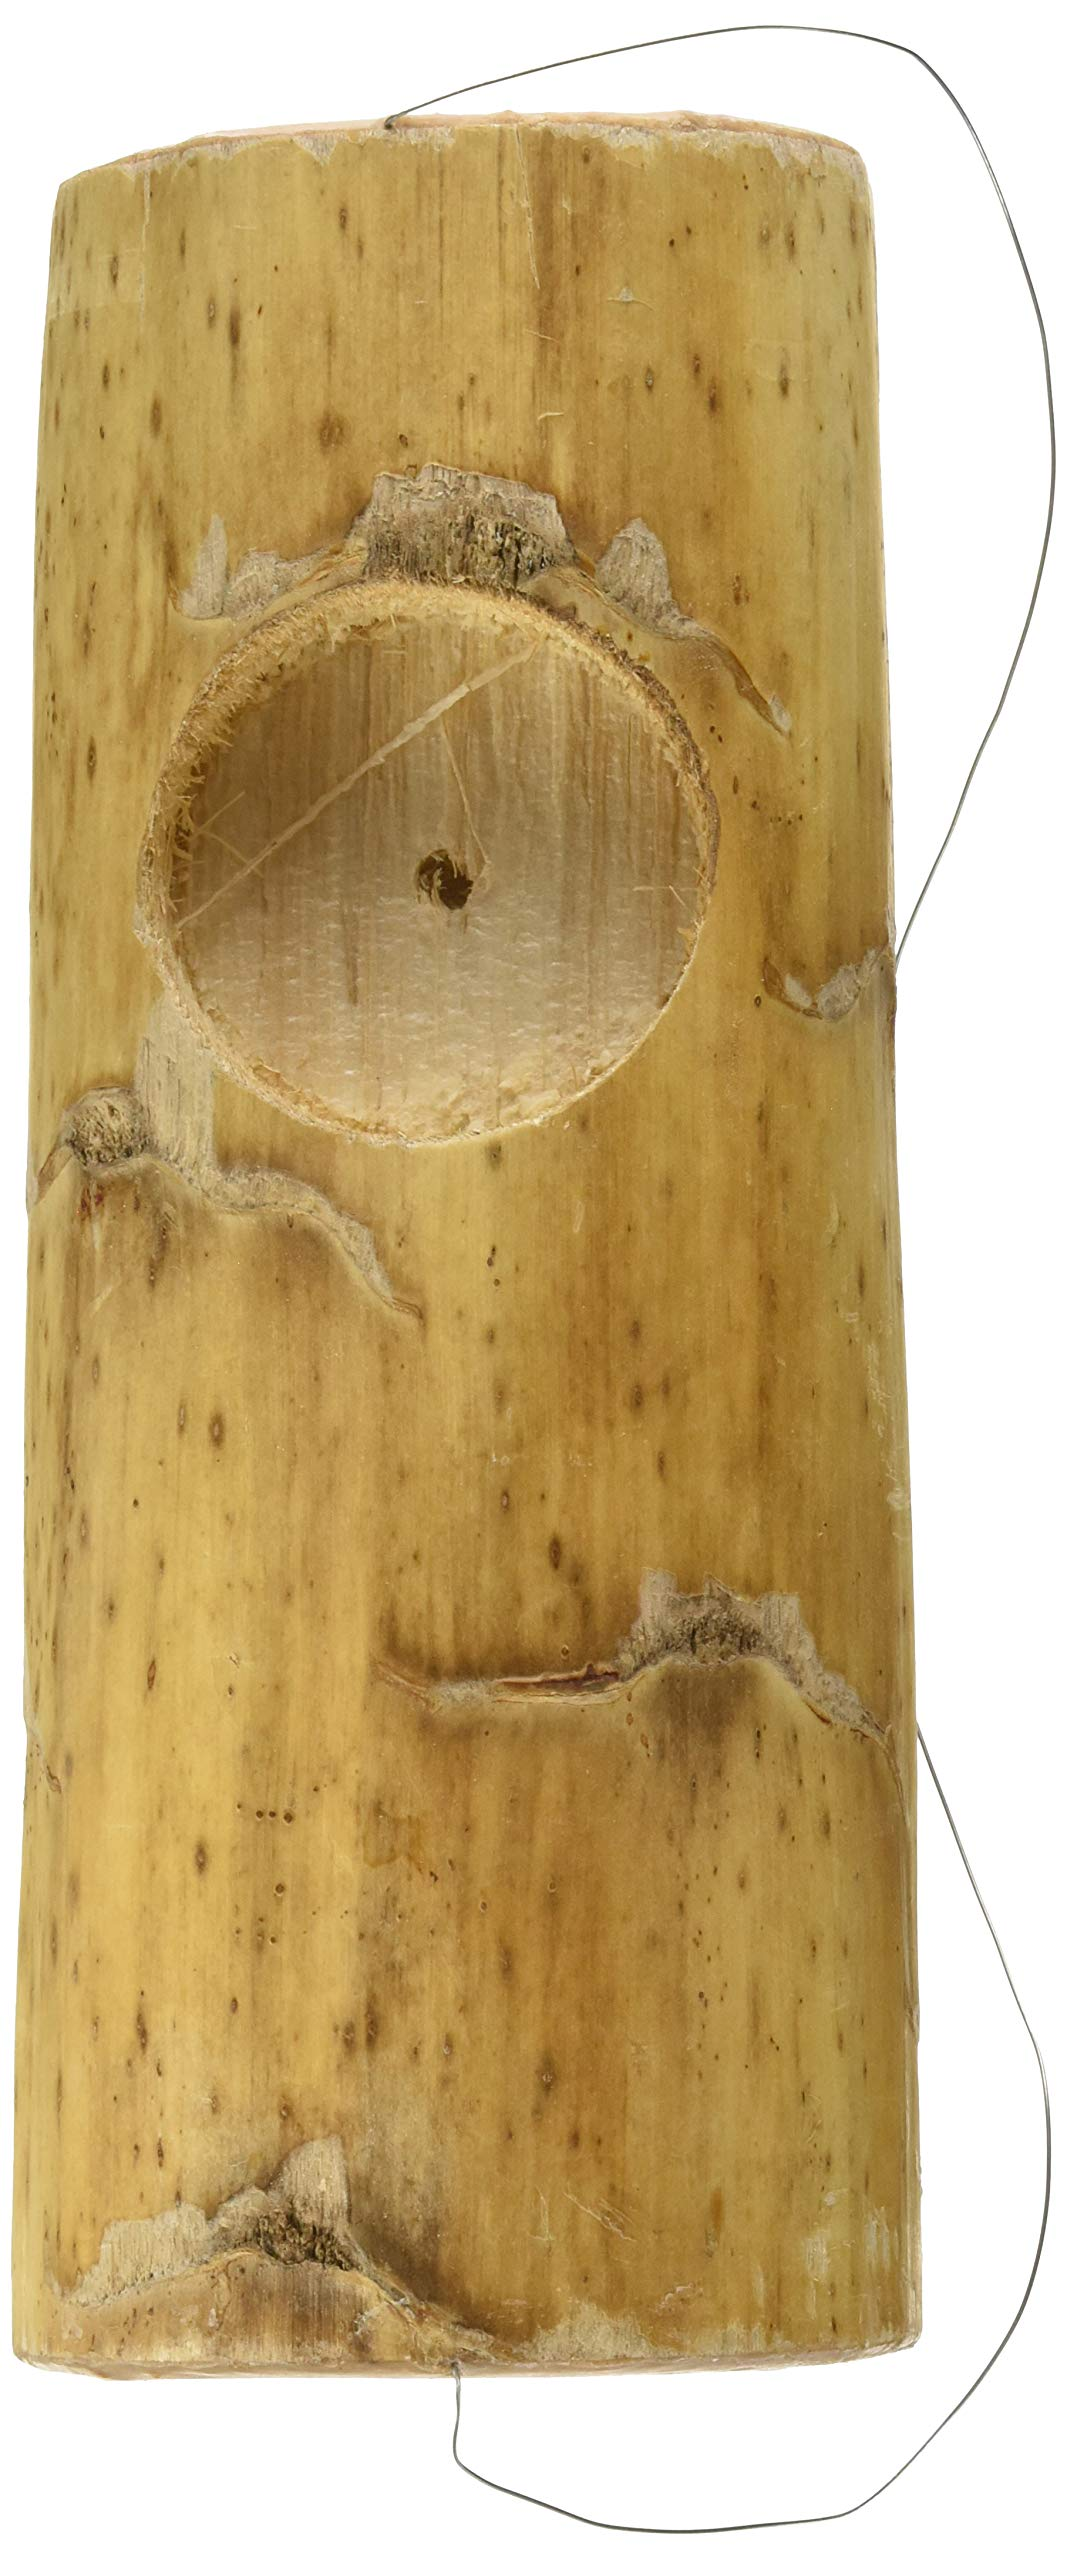 Wesco Pet Kozy Keet Woodchew Playnest Holistic Parakeet Nest by Wesco